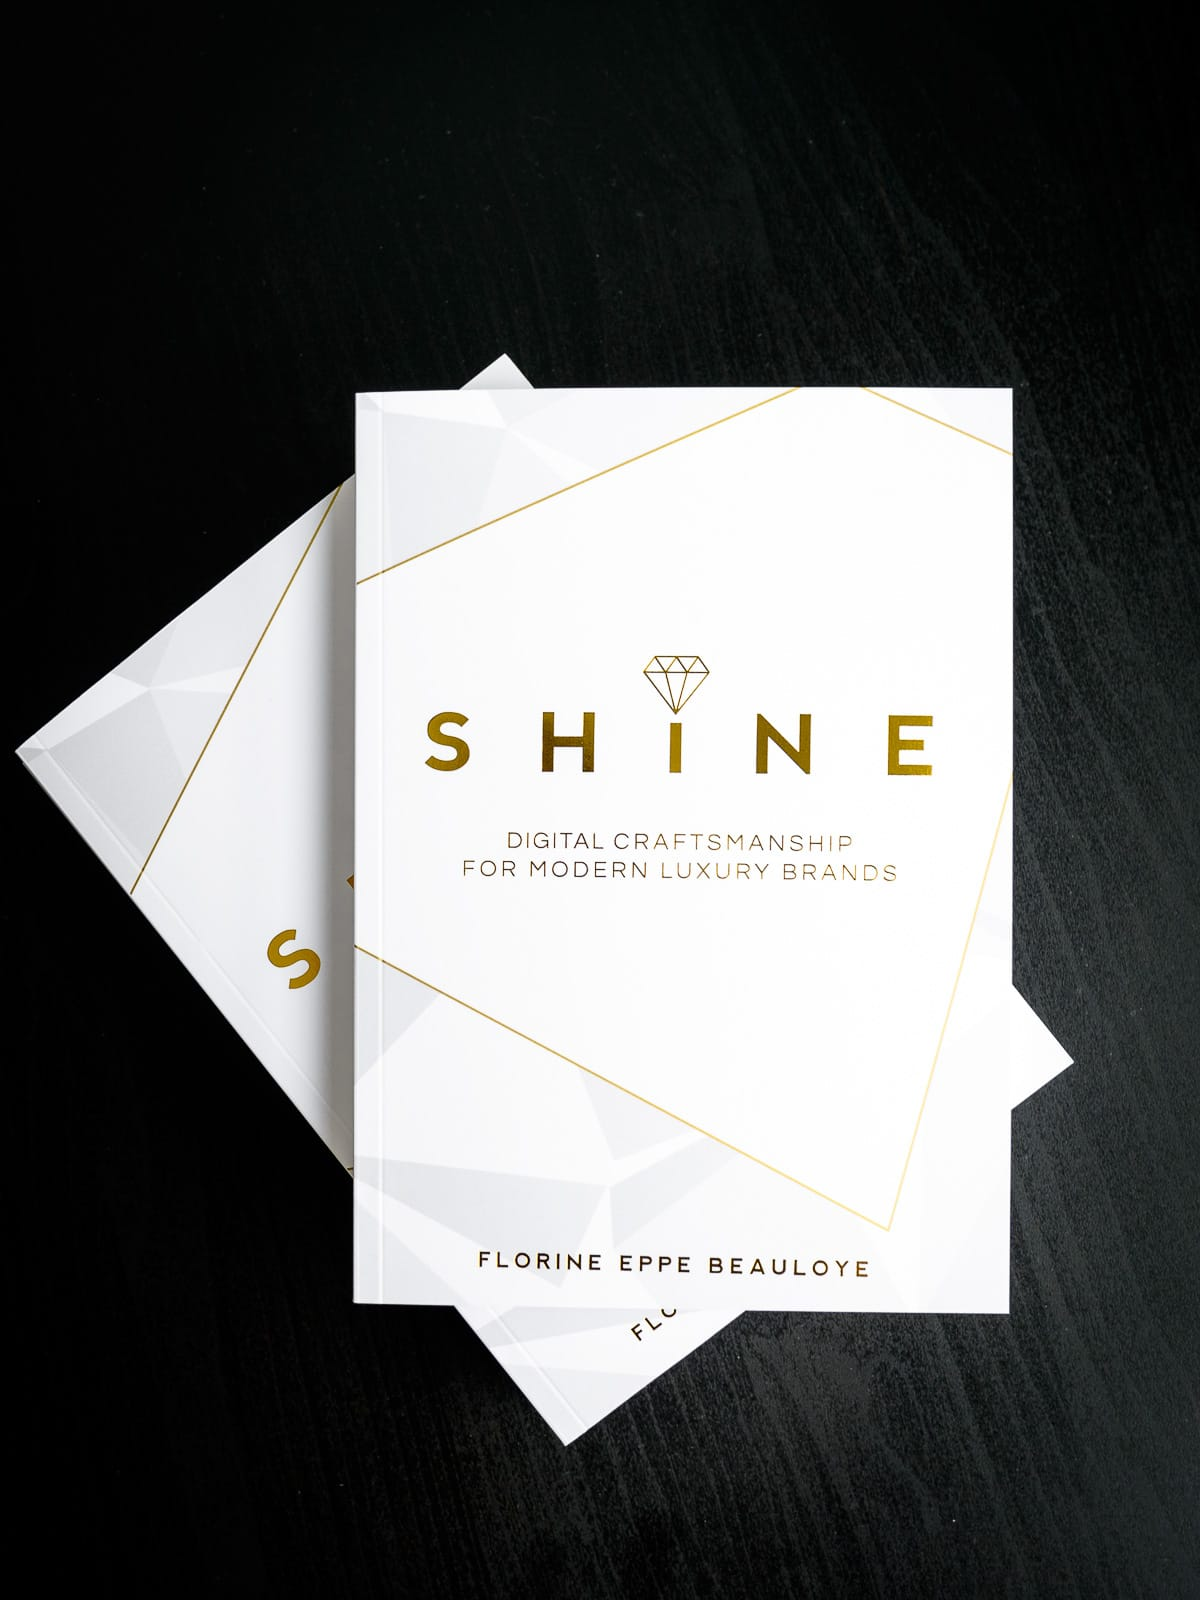 Shine Digital Luxury - Digital Craftsmanship for Modern Luxury Brands - Book Cover